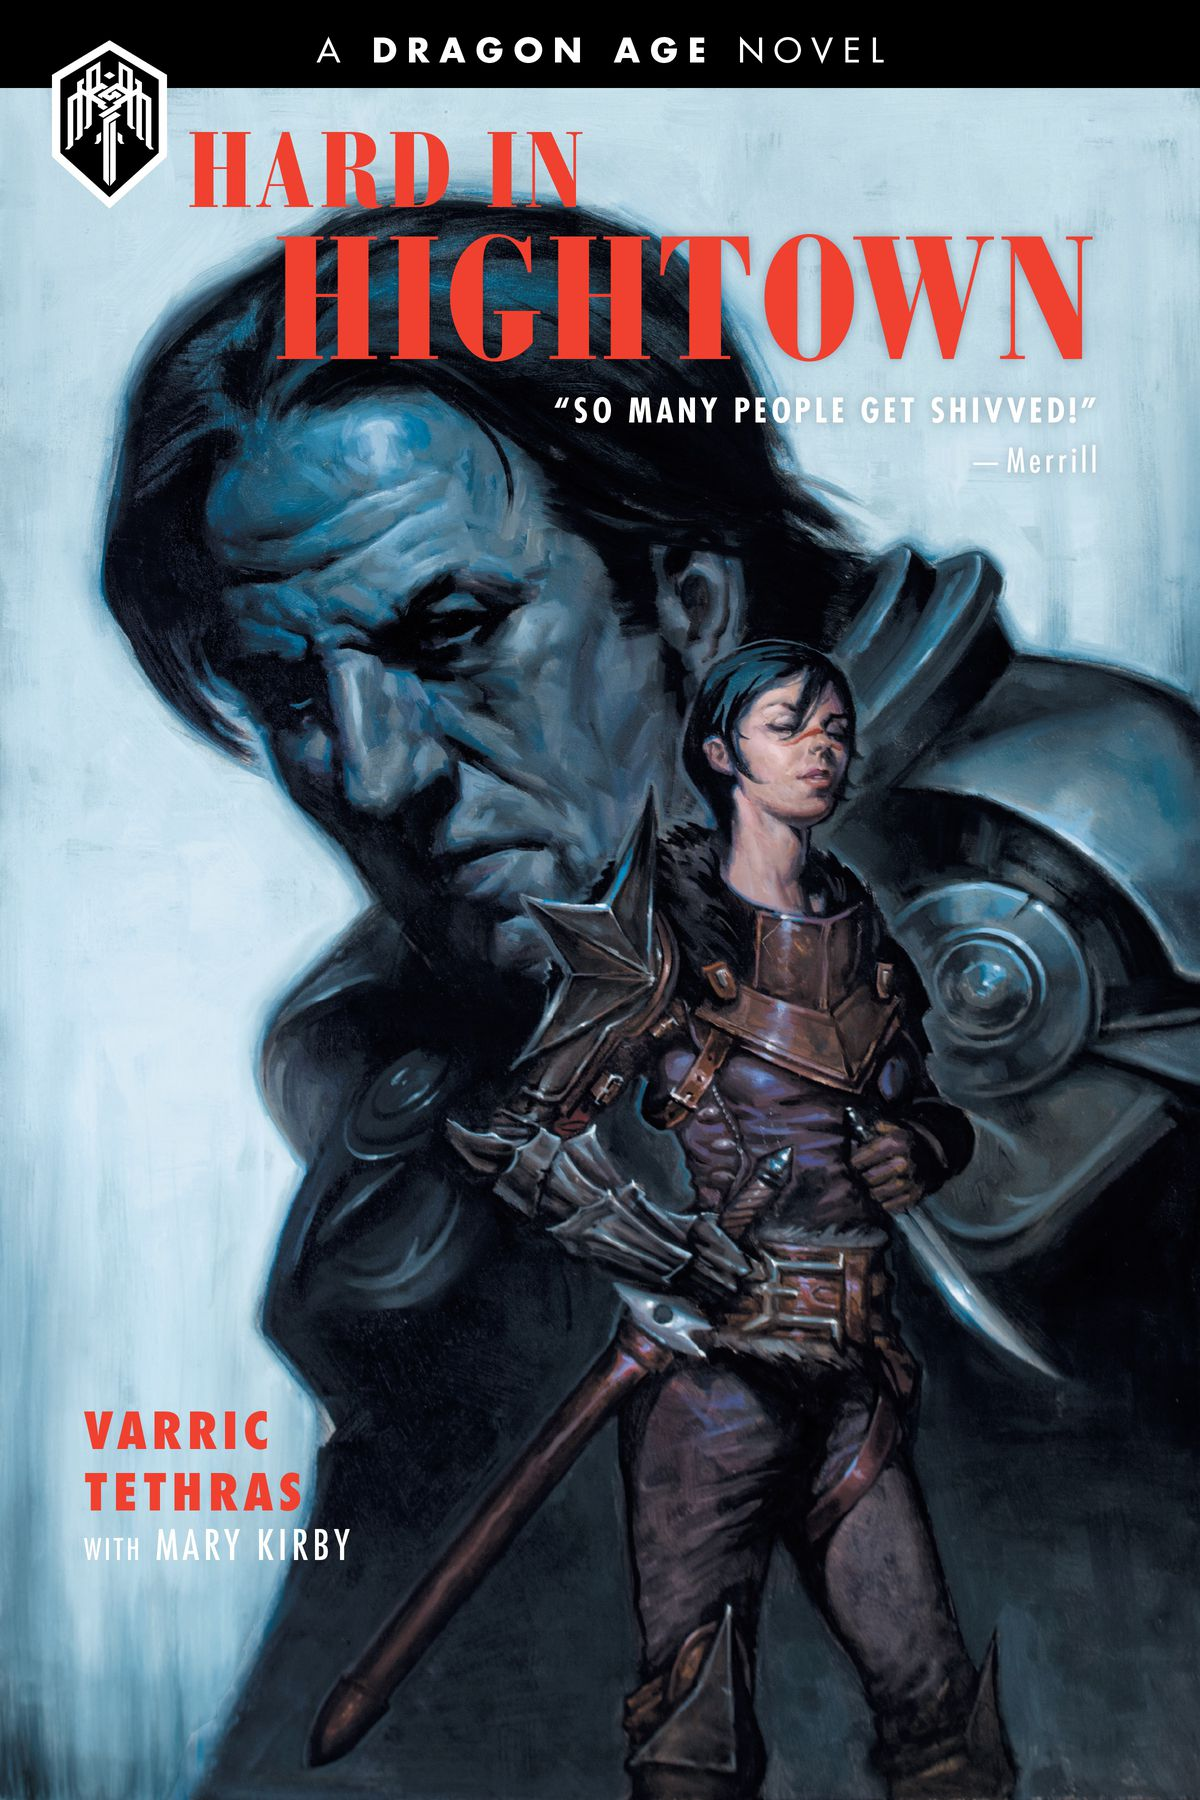 Cover, Hard in Hightown book.